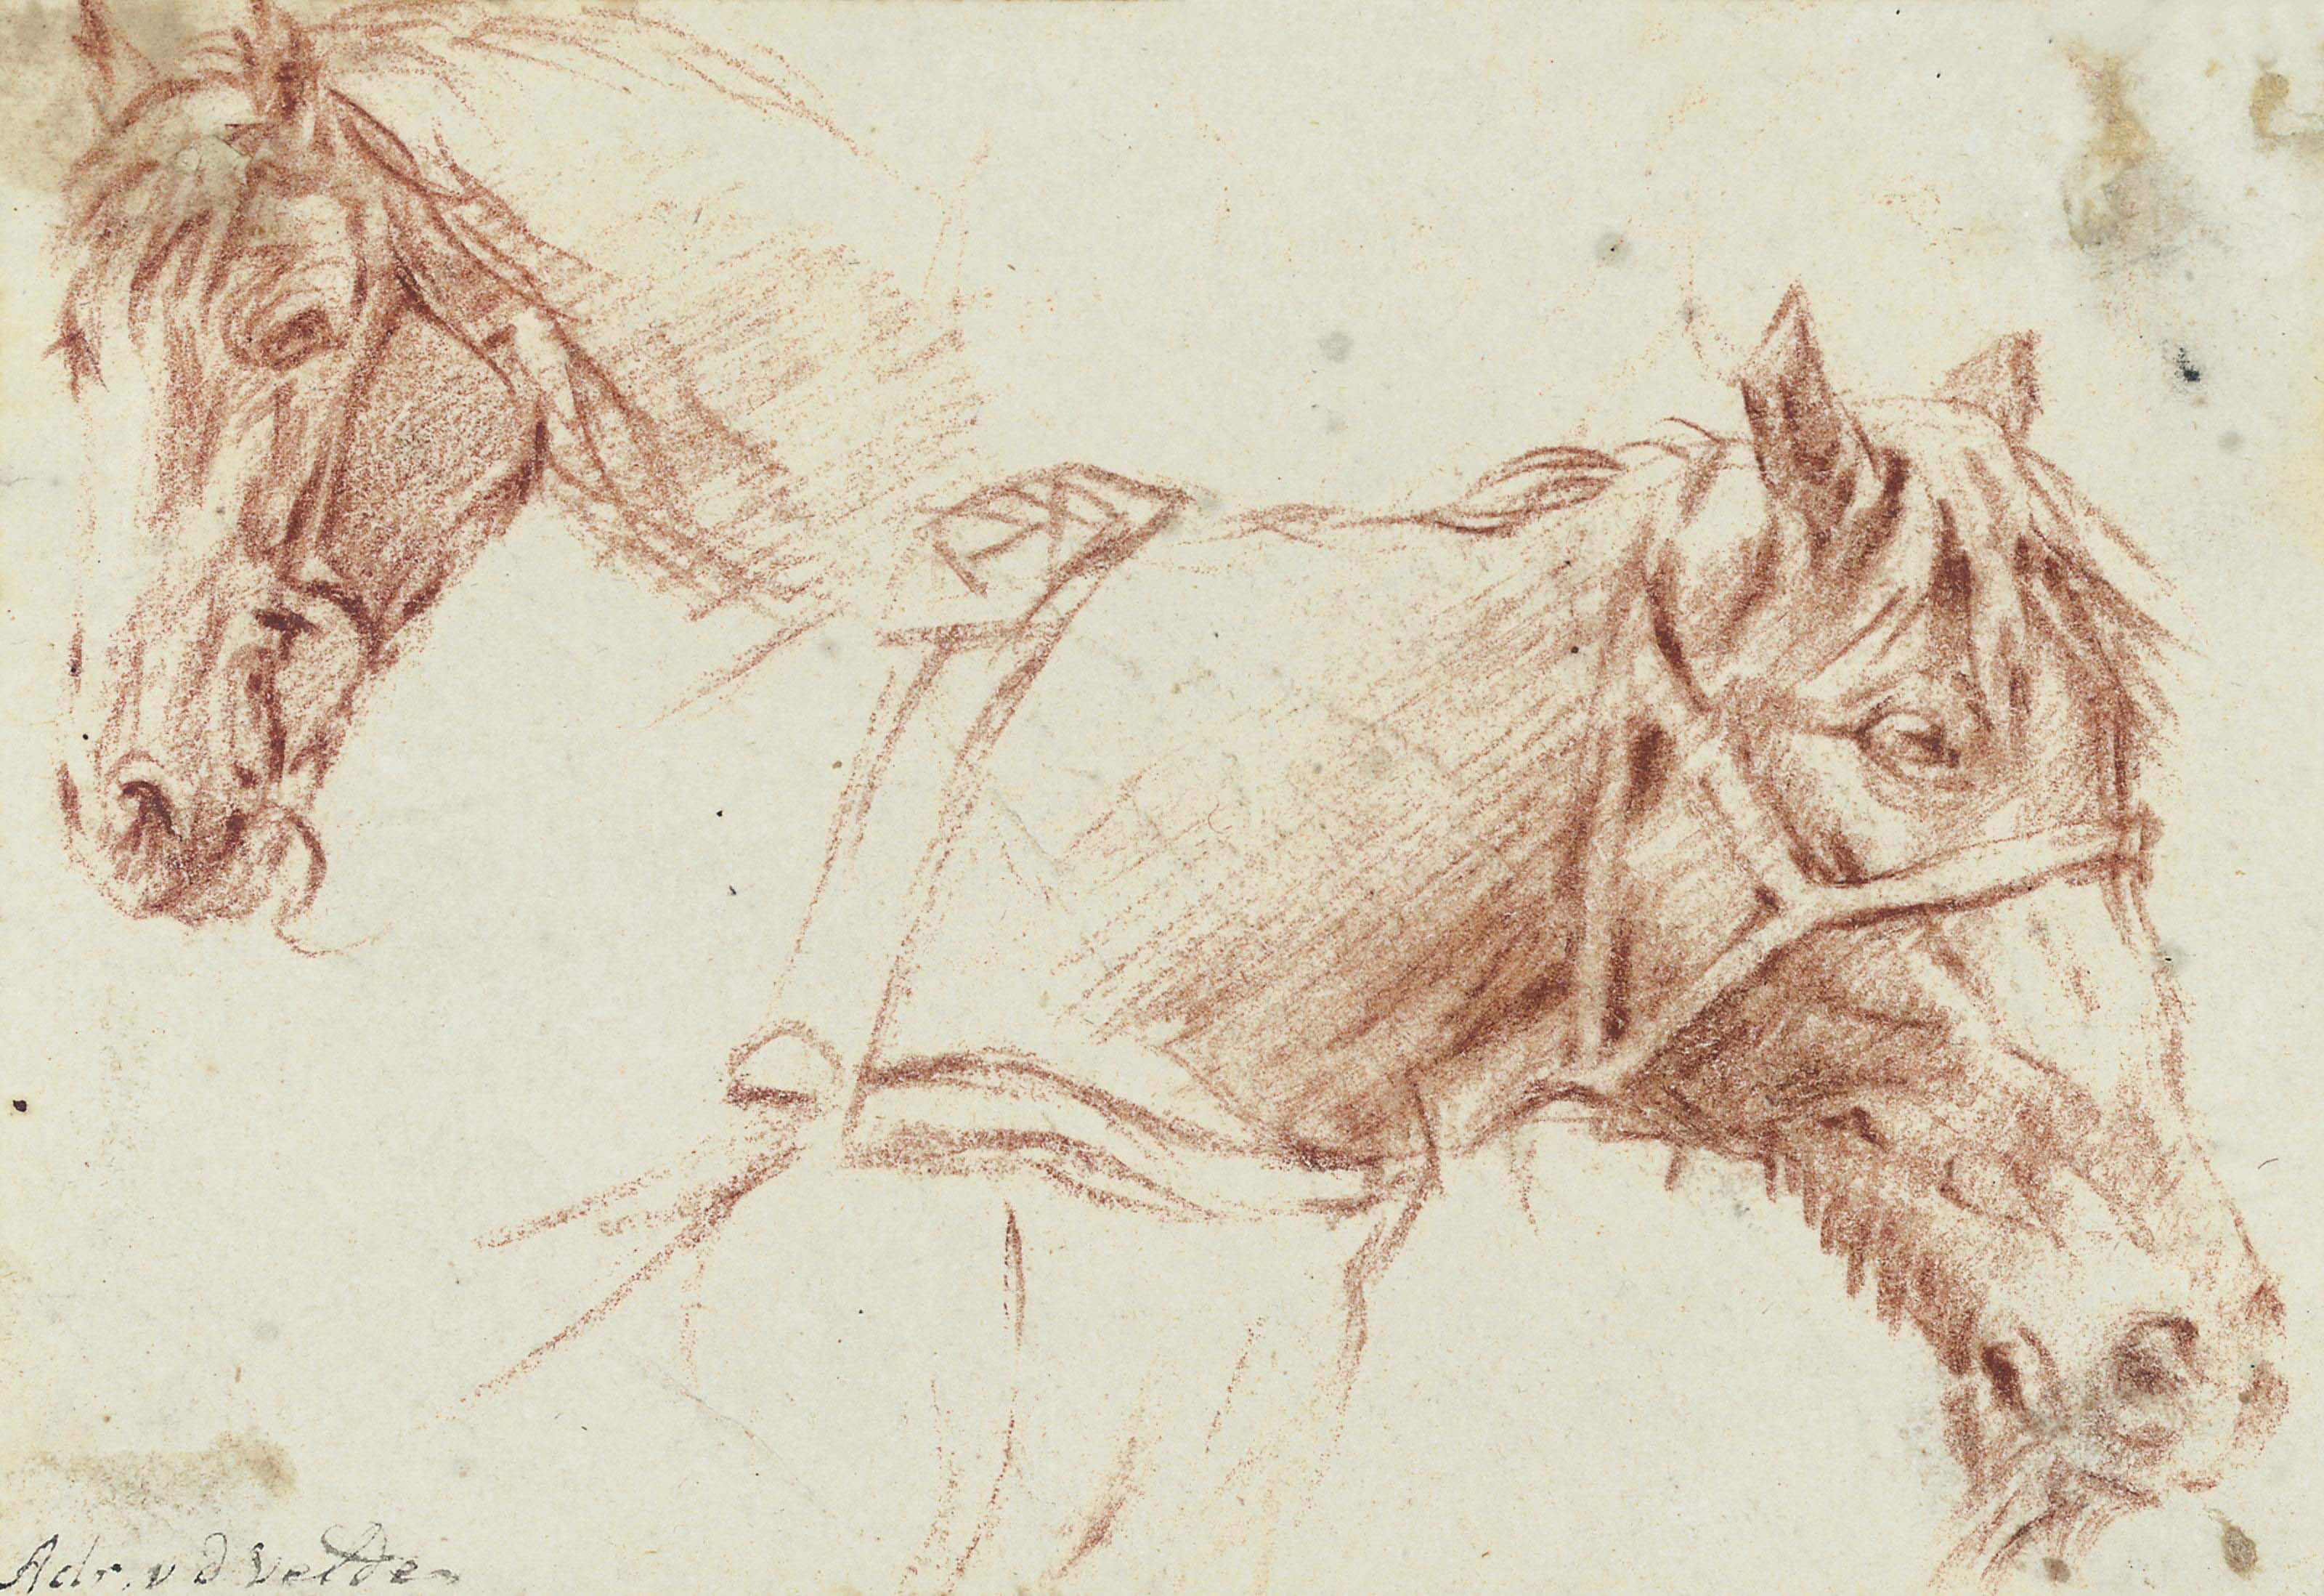 Two studies of the head of a horse